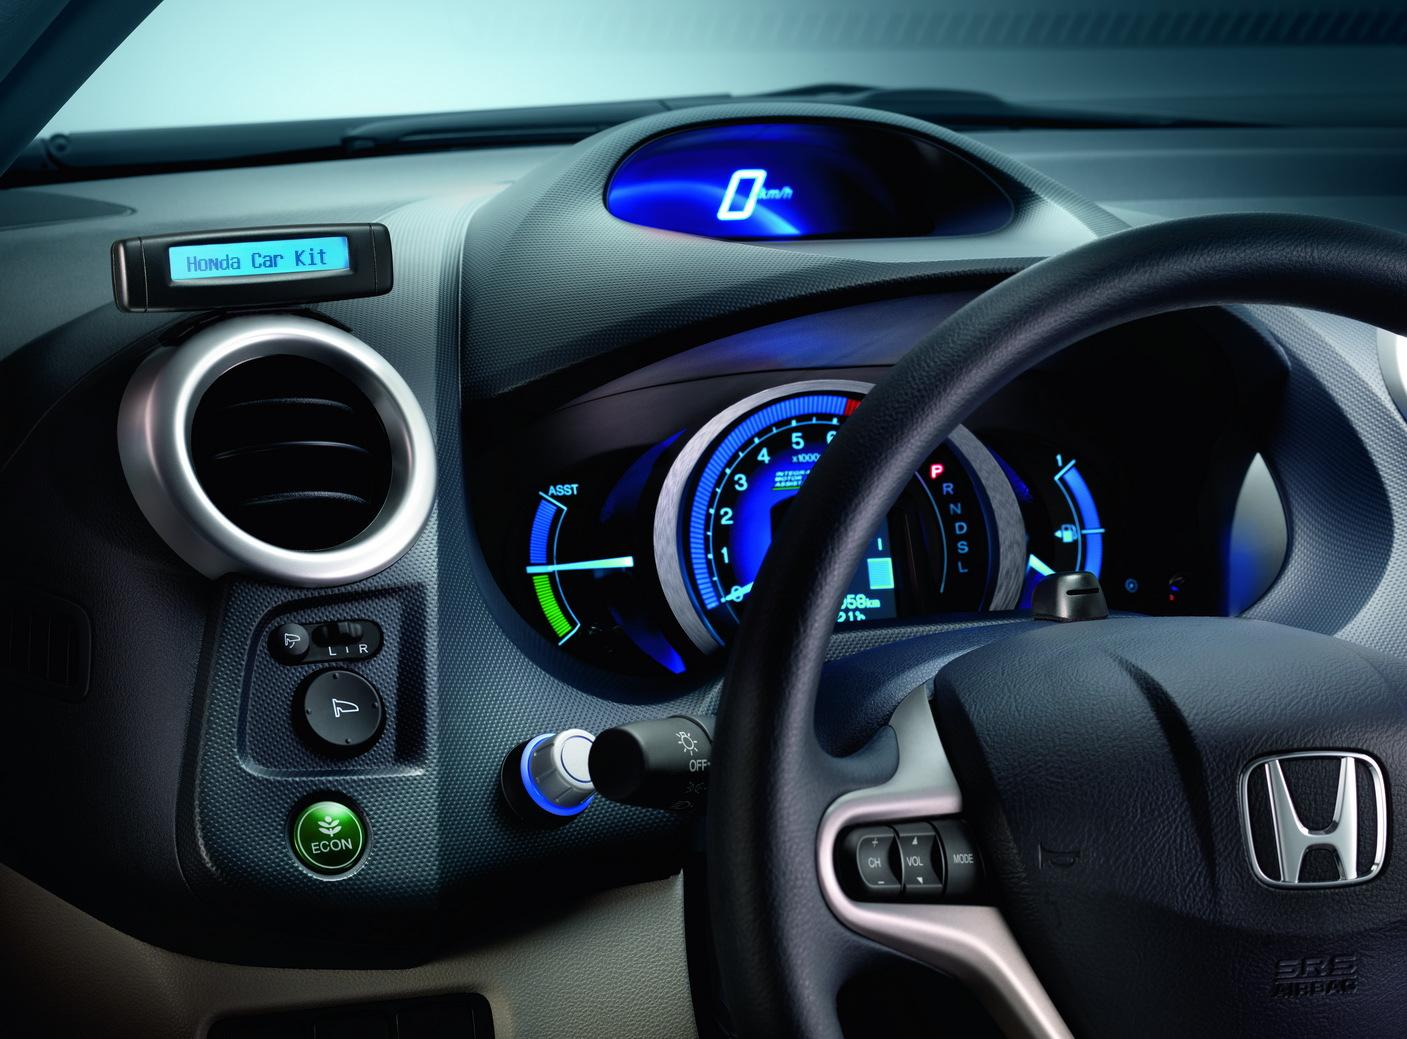 Coolest Car Accessories For Tech-Savvy Drivers To Travel In Comfort